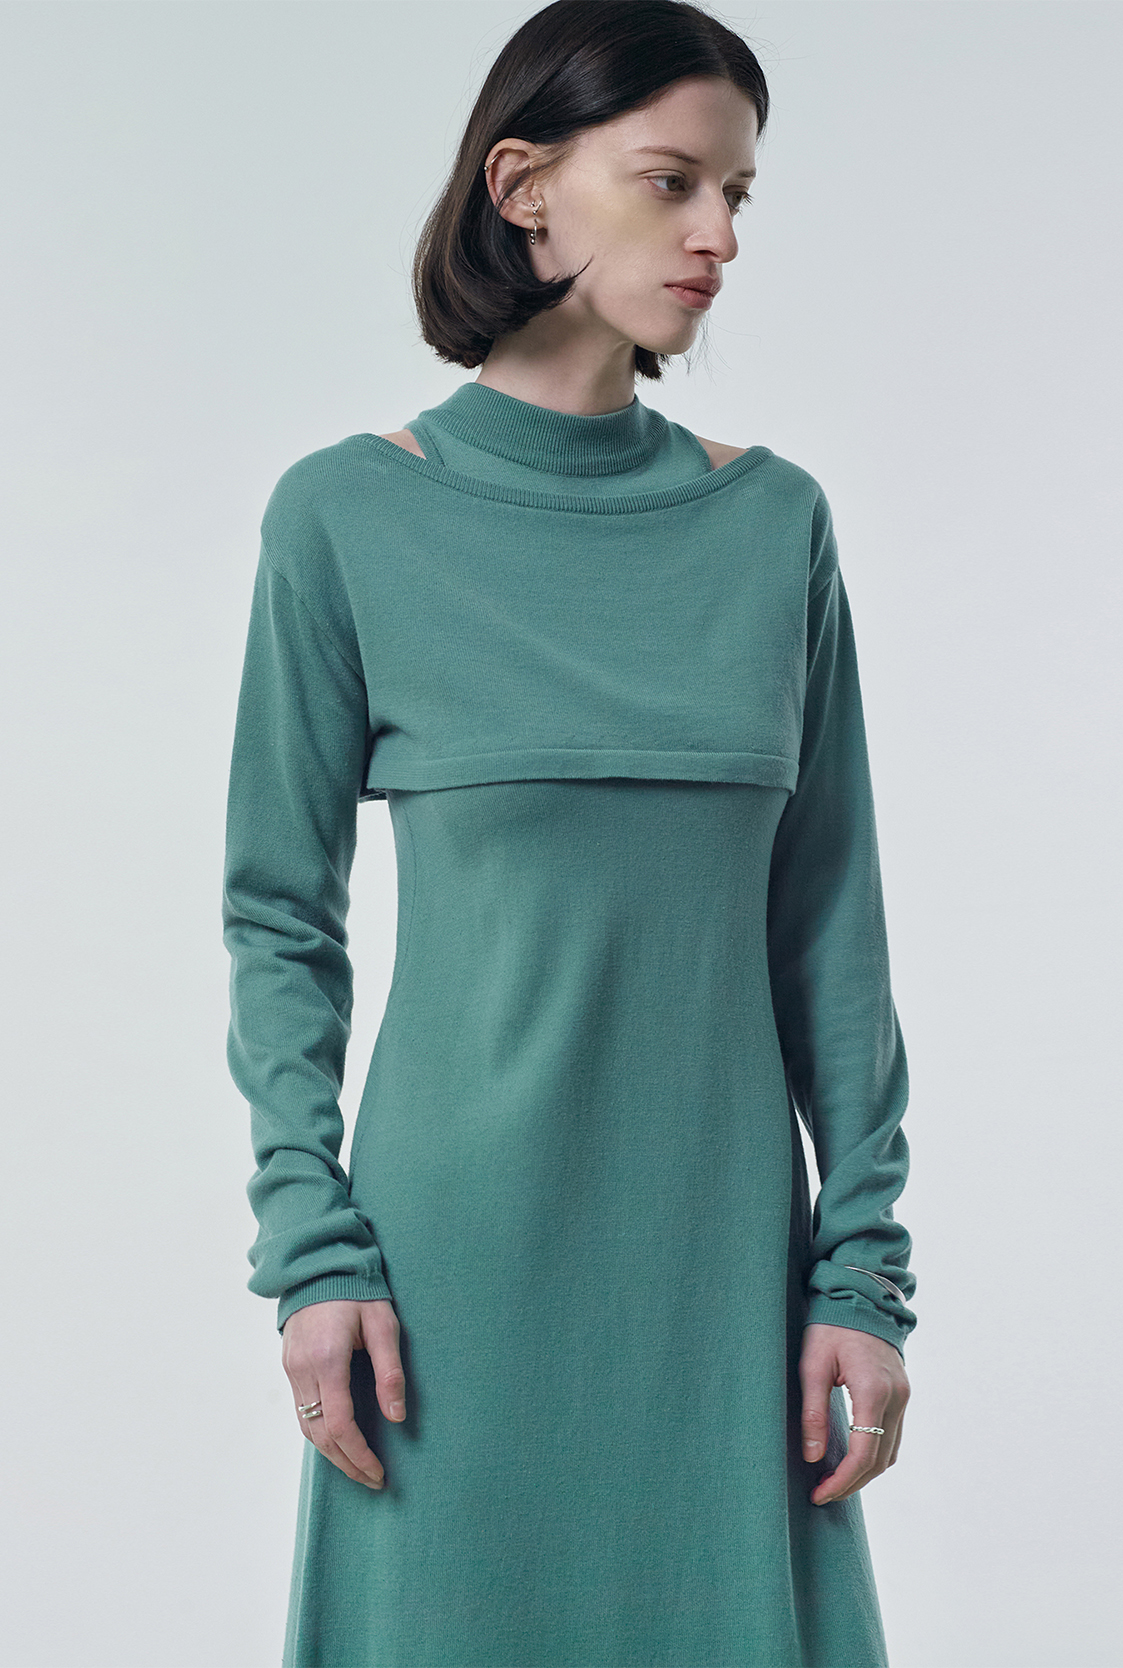 R BOLERO LAYERED KNIT DRESS_OLIVE